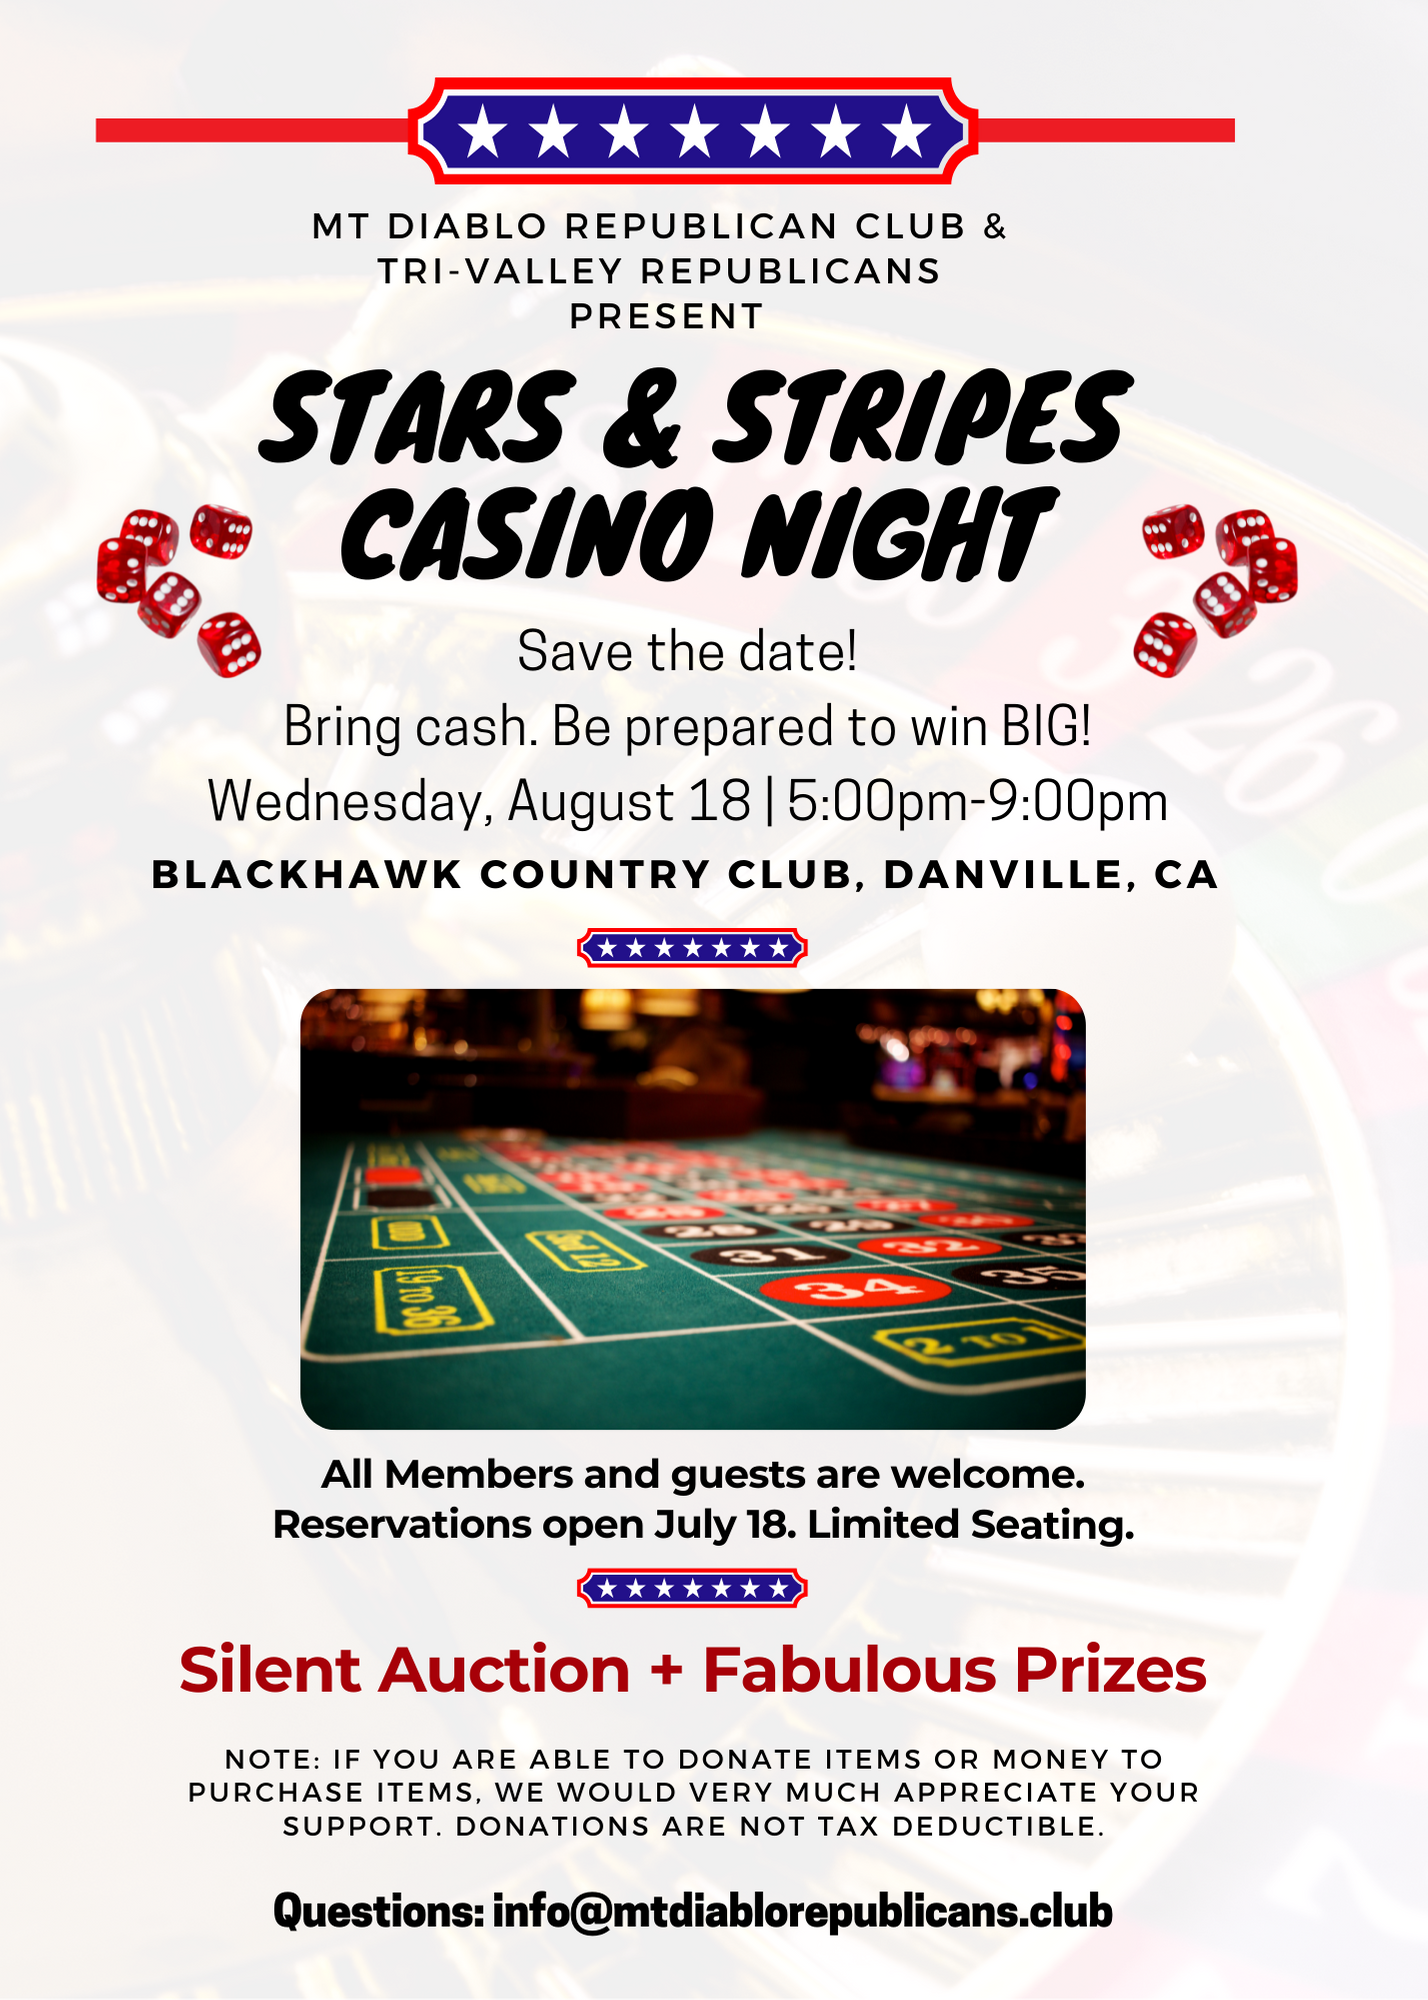 MDRC_Event_Flyer_August_21_Casino_Night.png